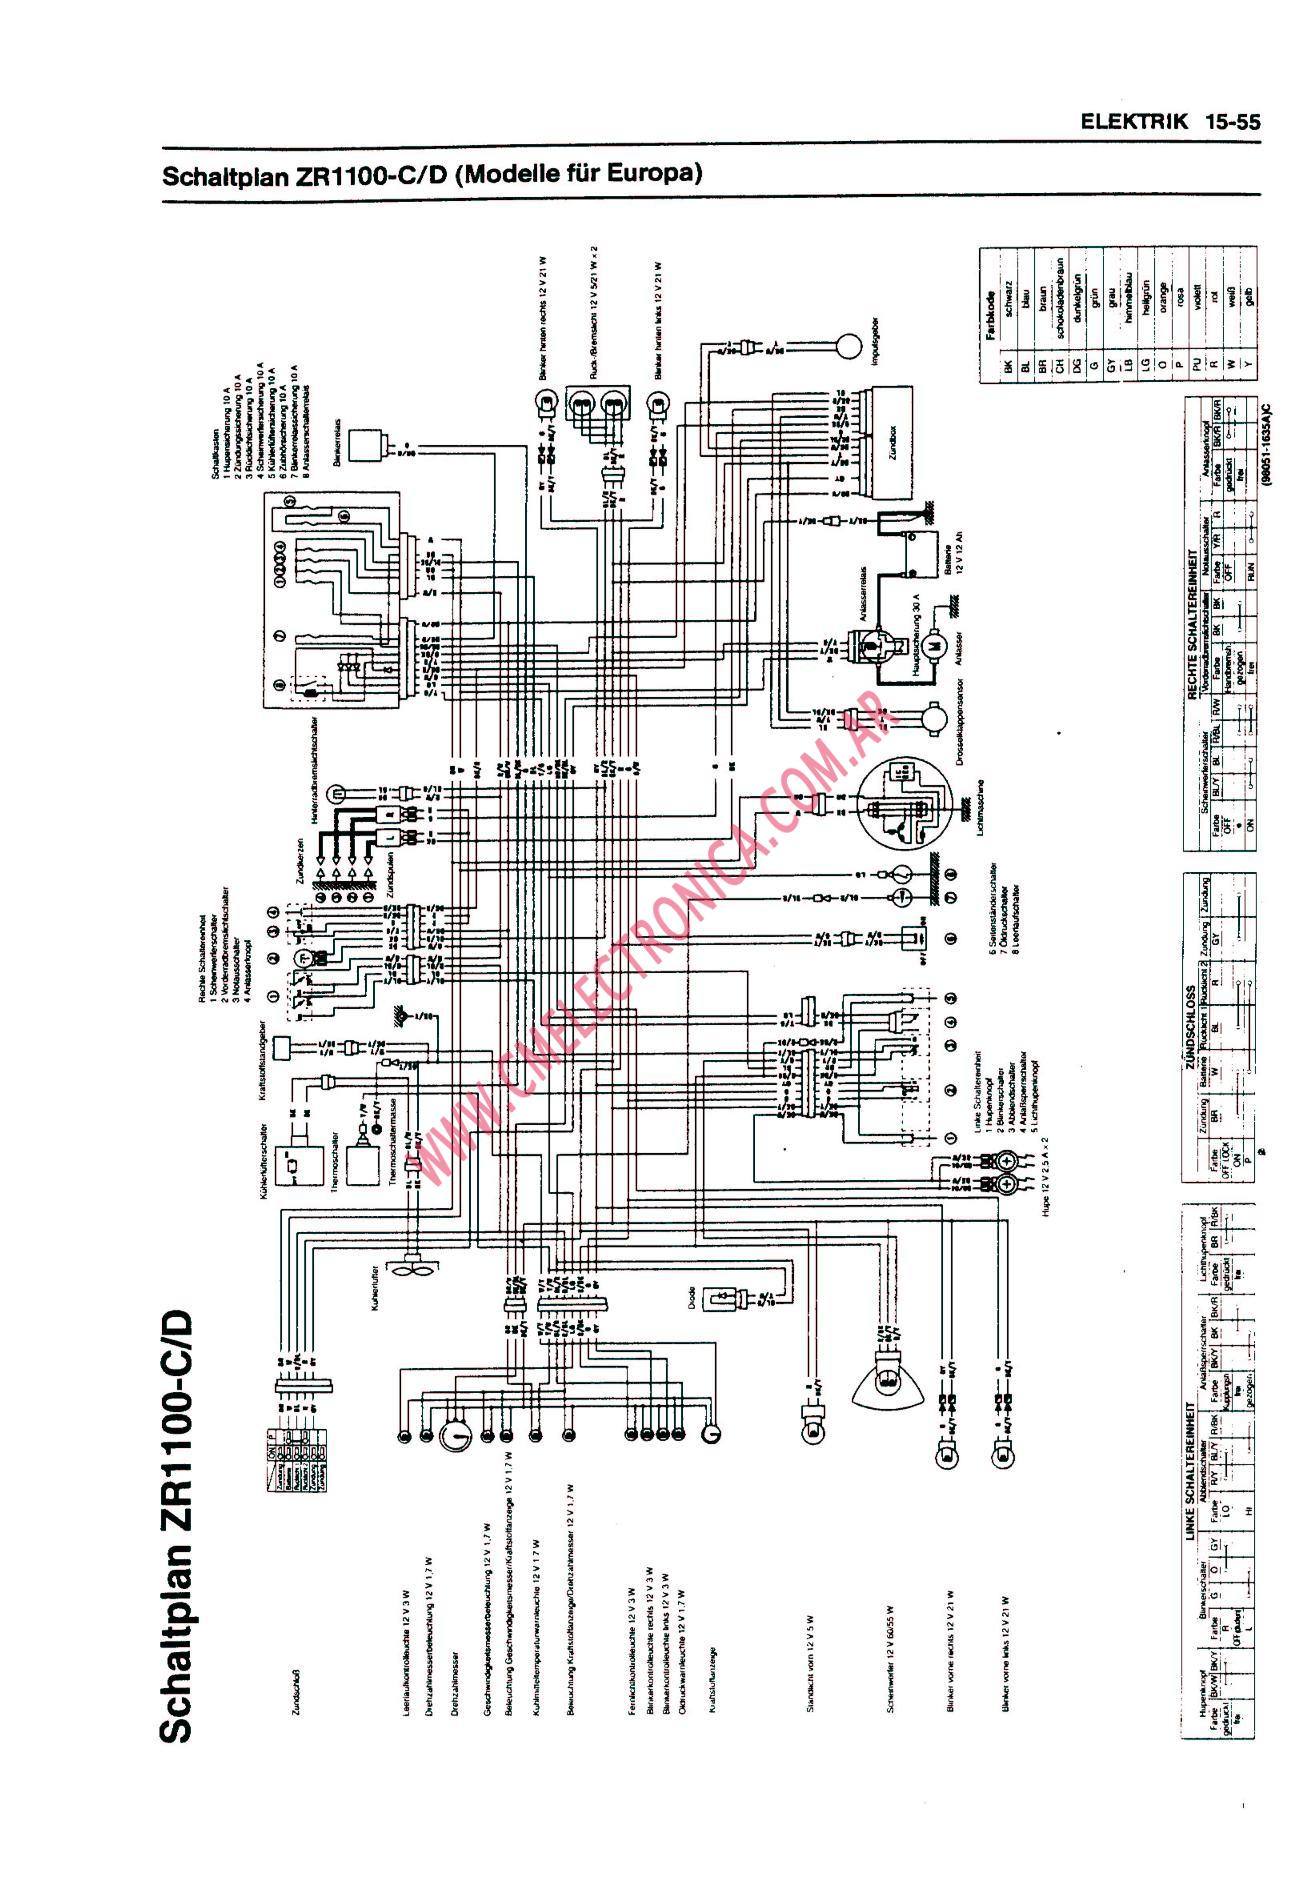 ... kawasaki zrx1100 300ex wiring diagram 300ex diy wiring diagrams manual  and at cita.asia